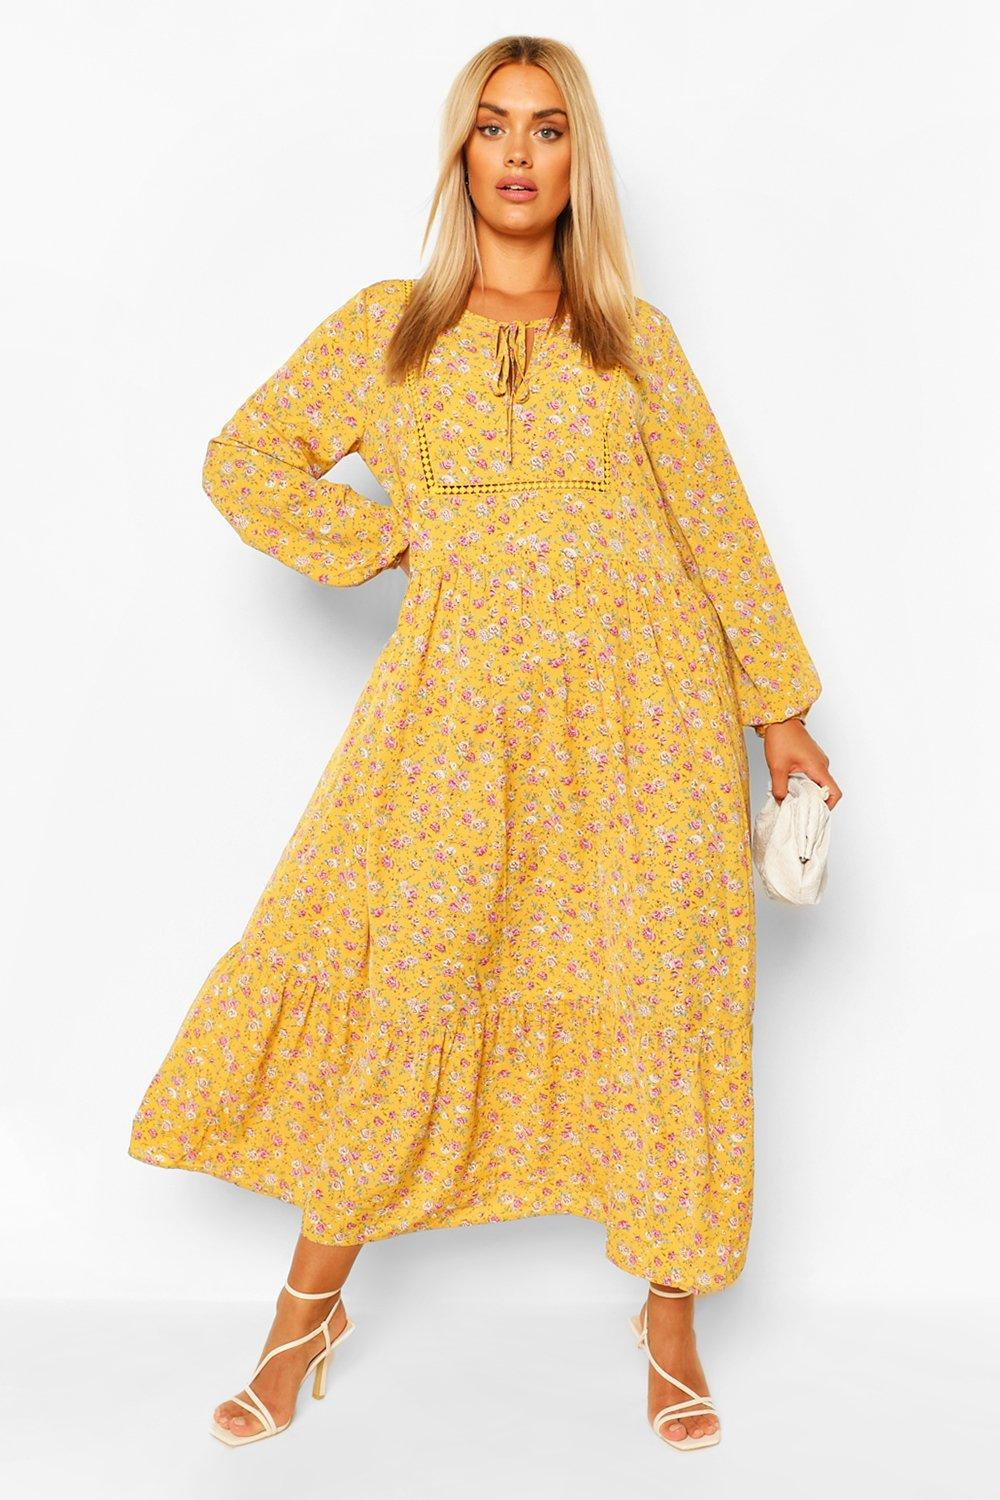 Cottagecore Dresses Aesthetic, Granny, Vintage Womens Plus Floral Smock Boho Maxi Dress - Orange - 14 $19.20 AT vintagedancer.com